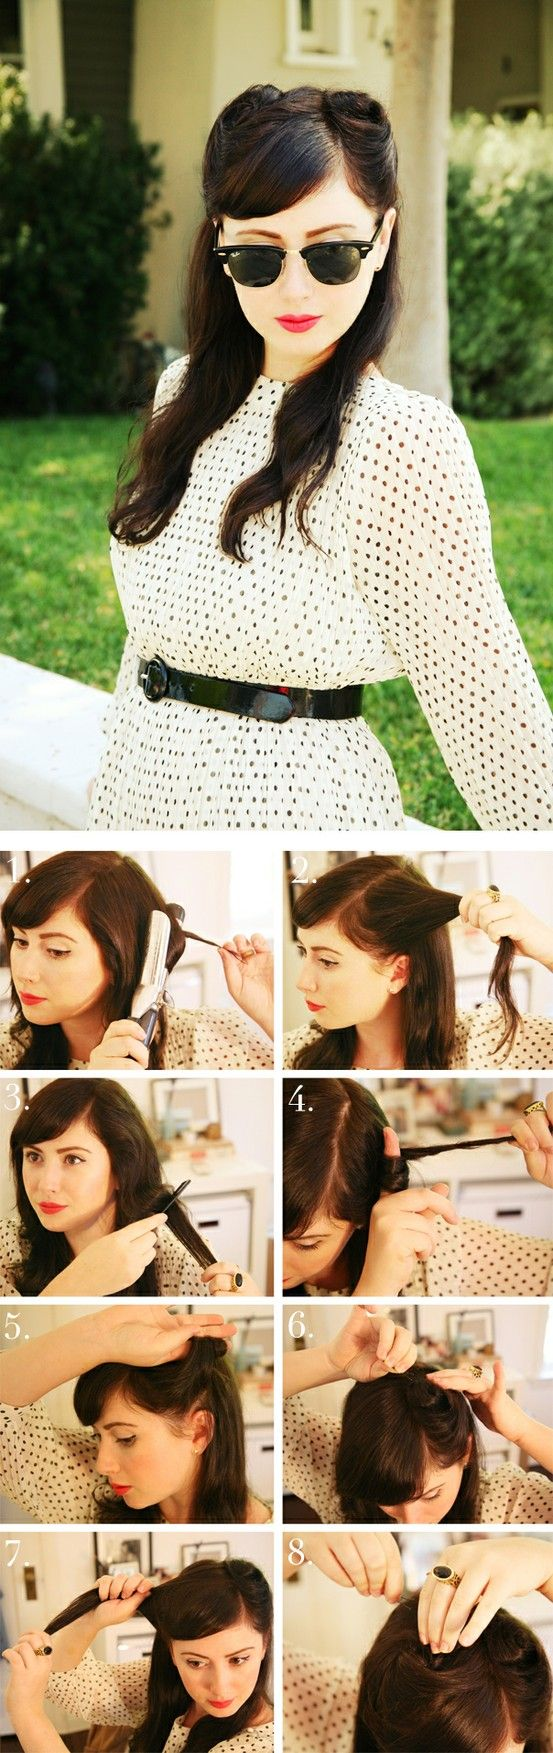 Love this modern take on the pin-up style! Get all you need to be Pin-Up Pretty at Beauty.com.